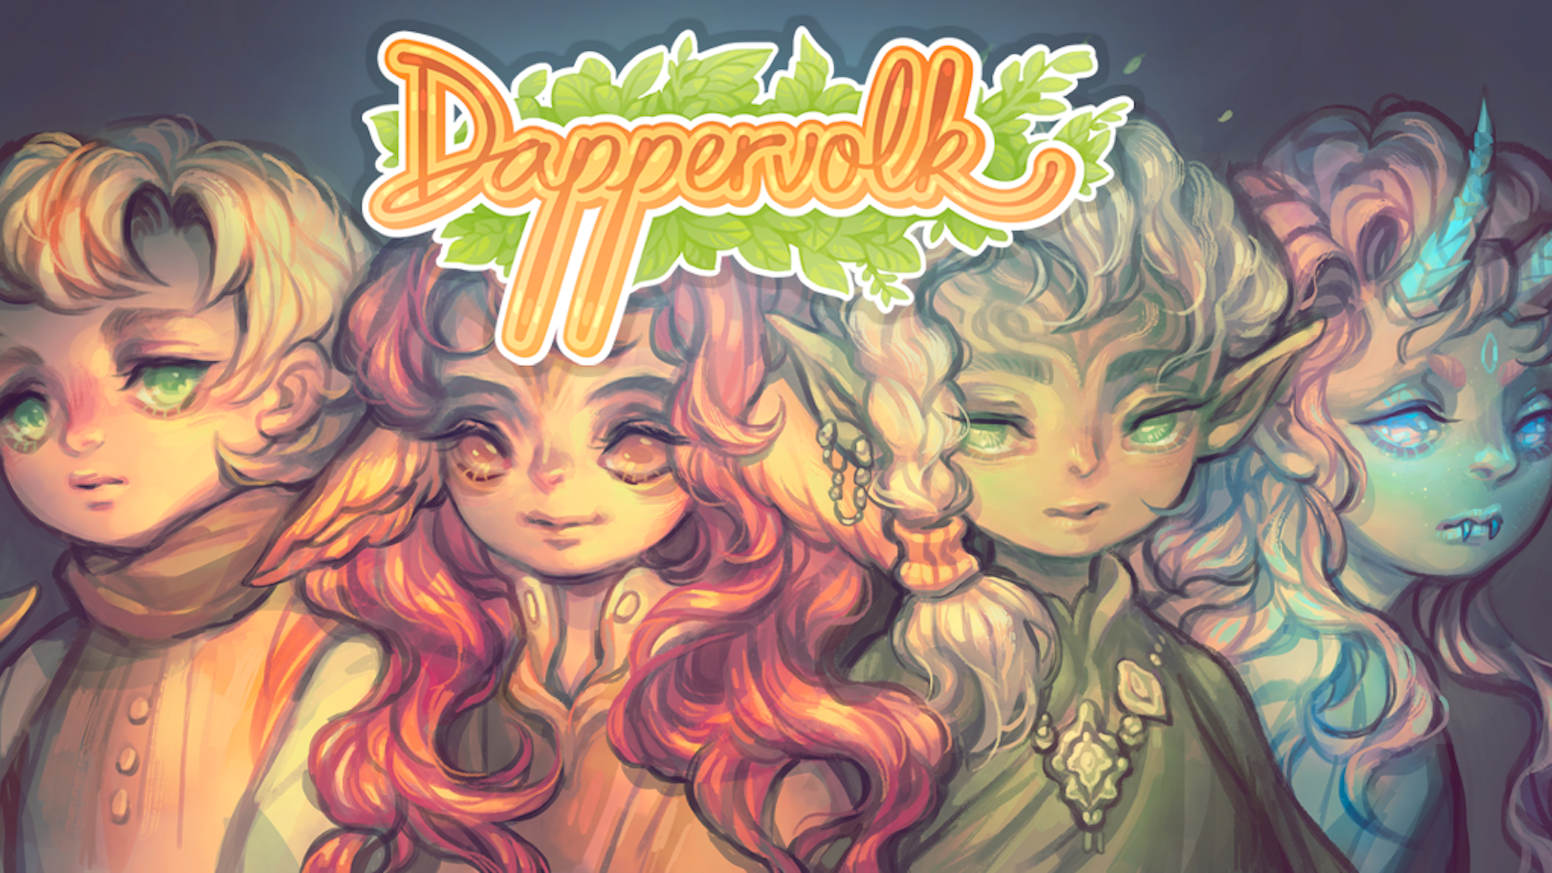 Dappervolk Is A Virtual Pet And Avatar Site With Cute Painterly Art RPG Elements